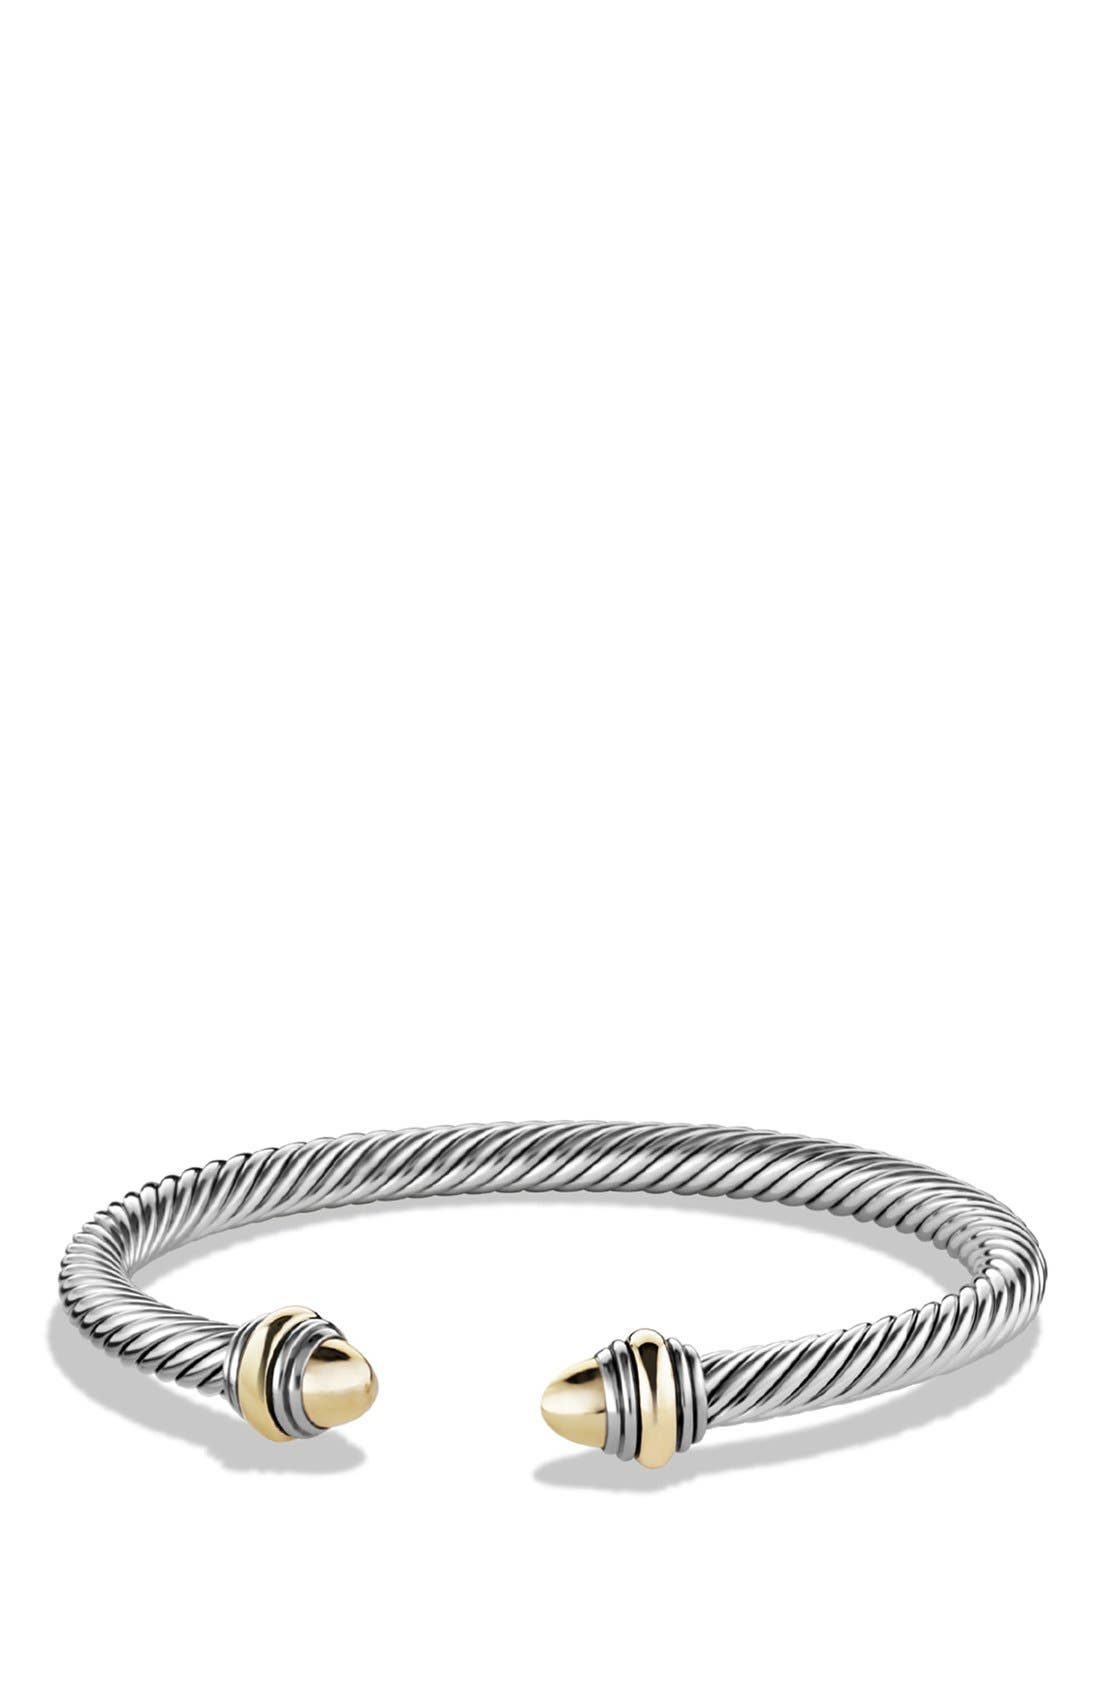 David Yurman 'Cable Classic' Bracelet with Gold